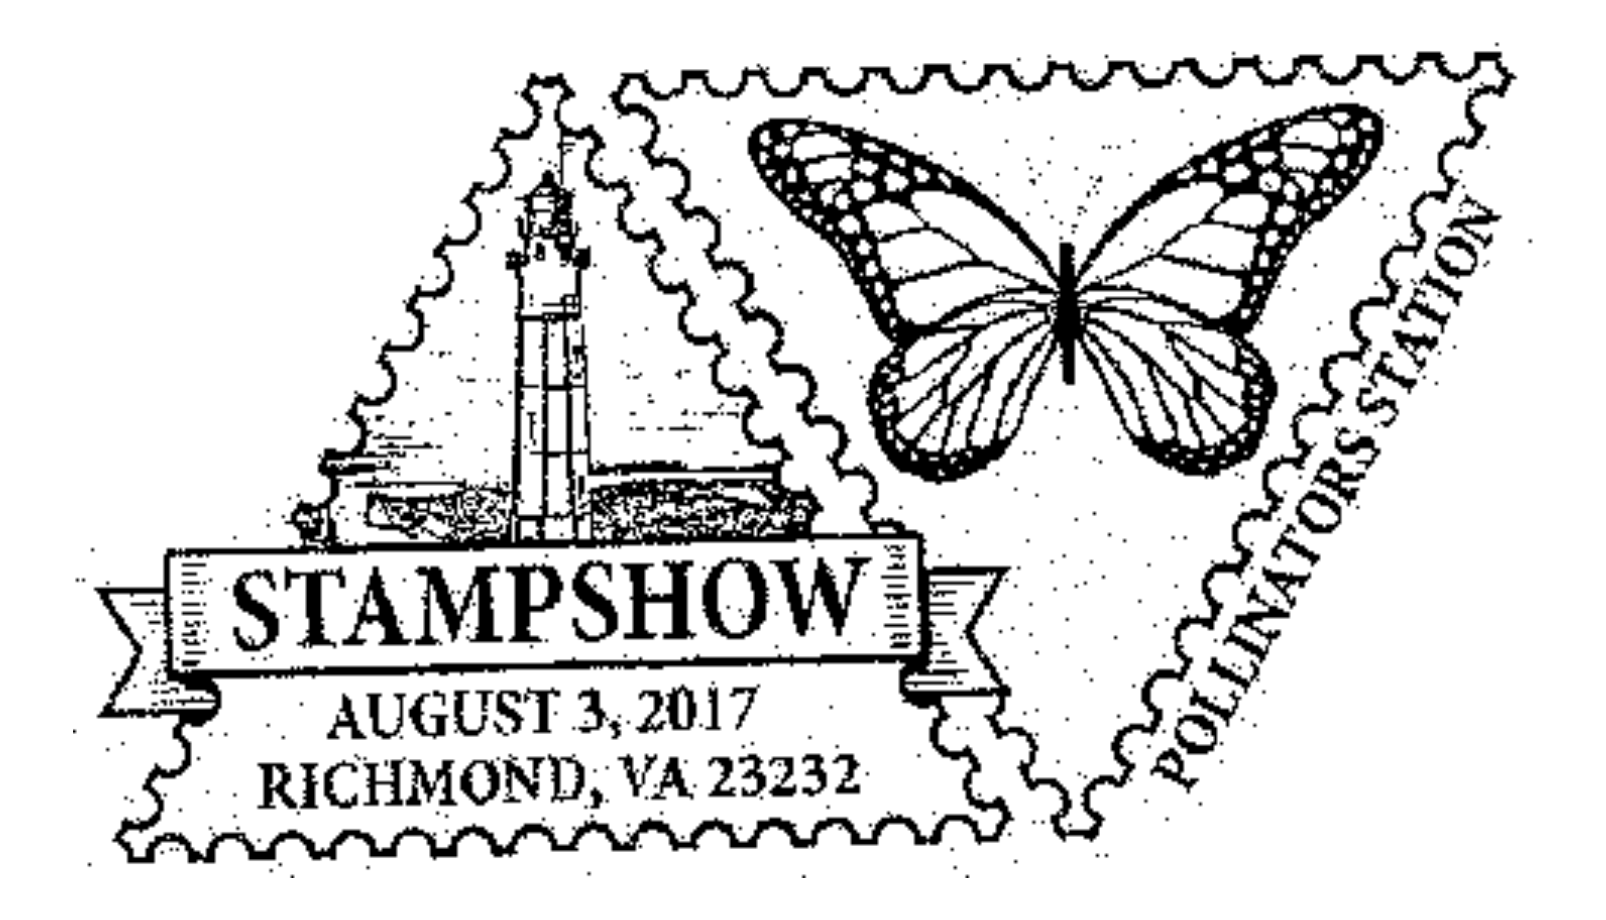 American Philatelic Society Pollinator Station, Richmond